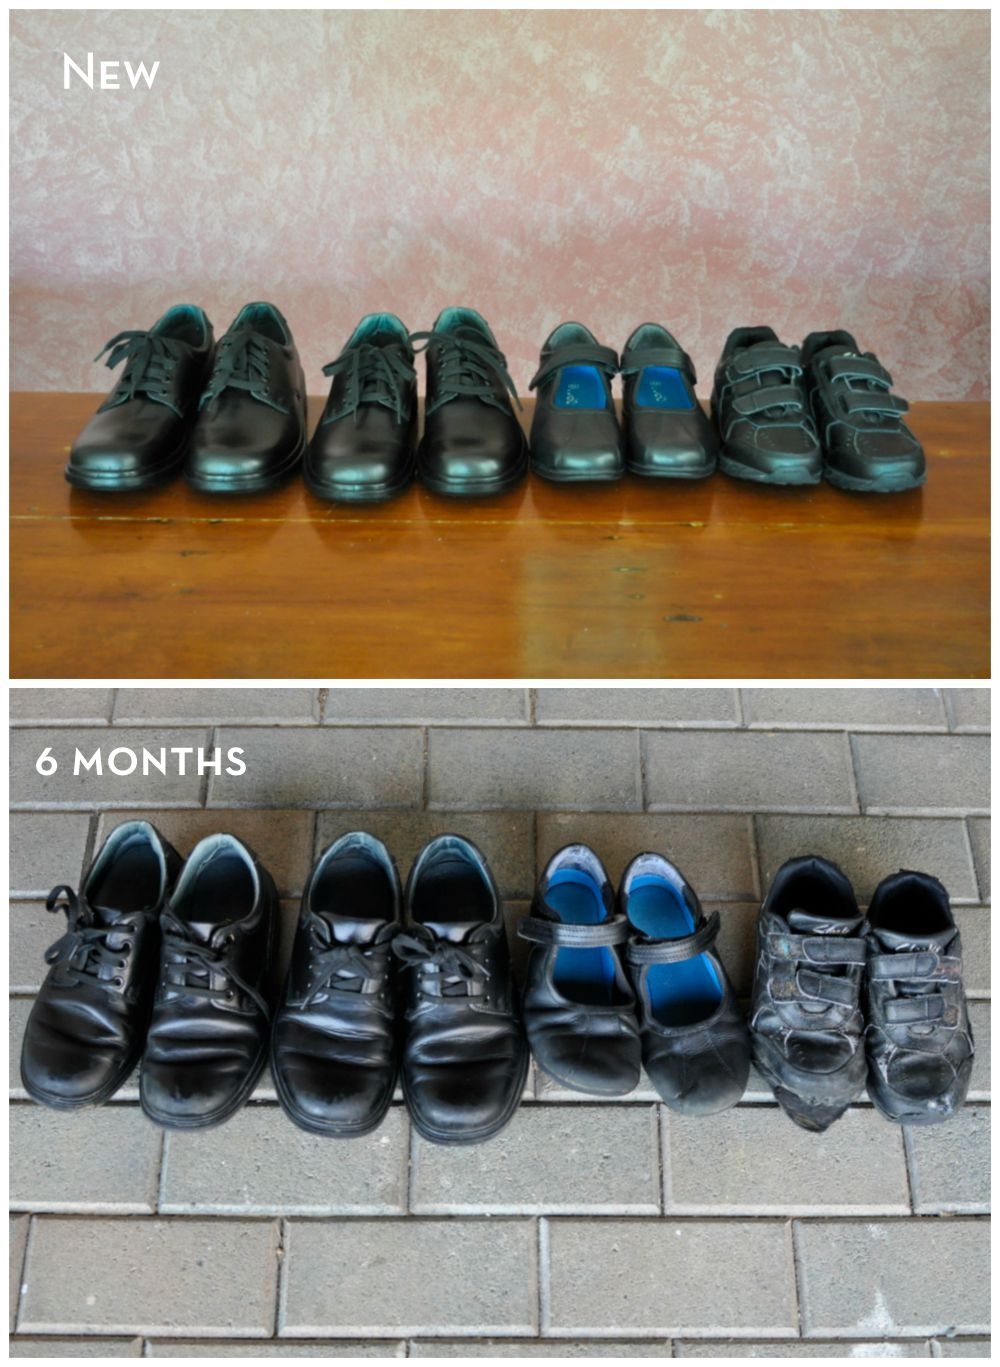 How long to school shoes last